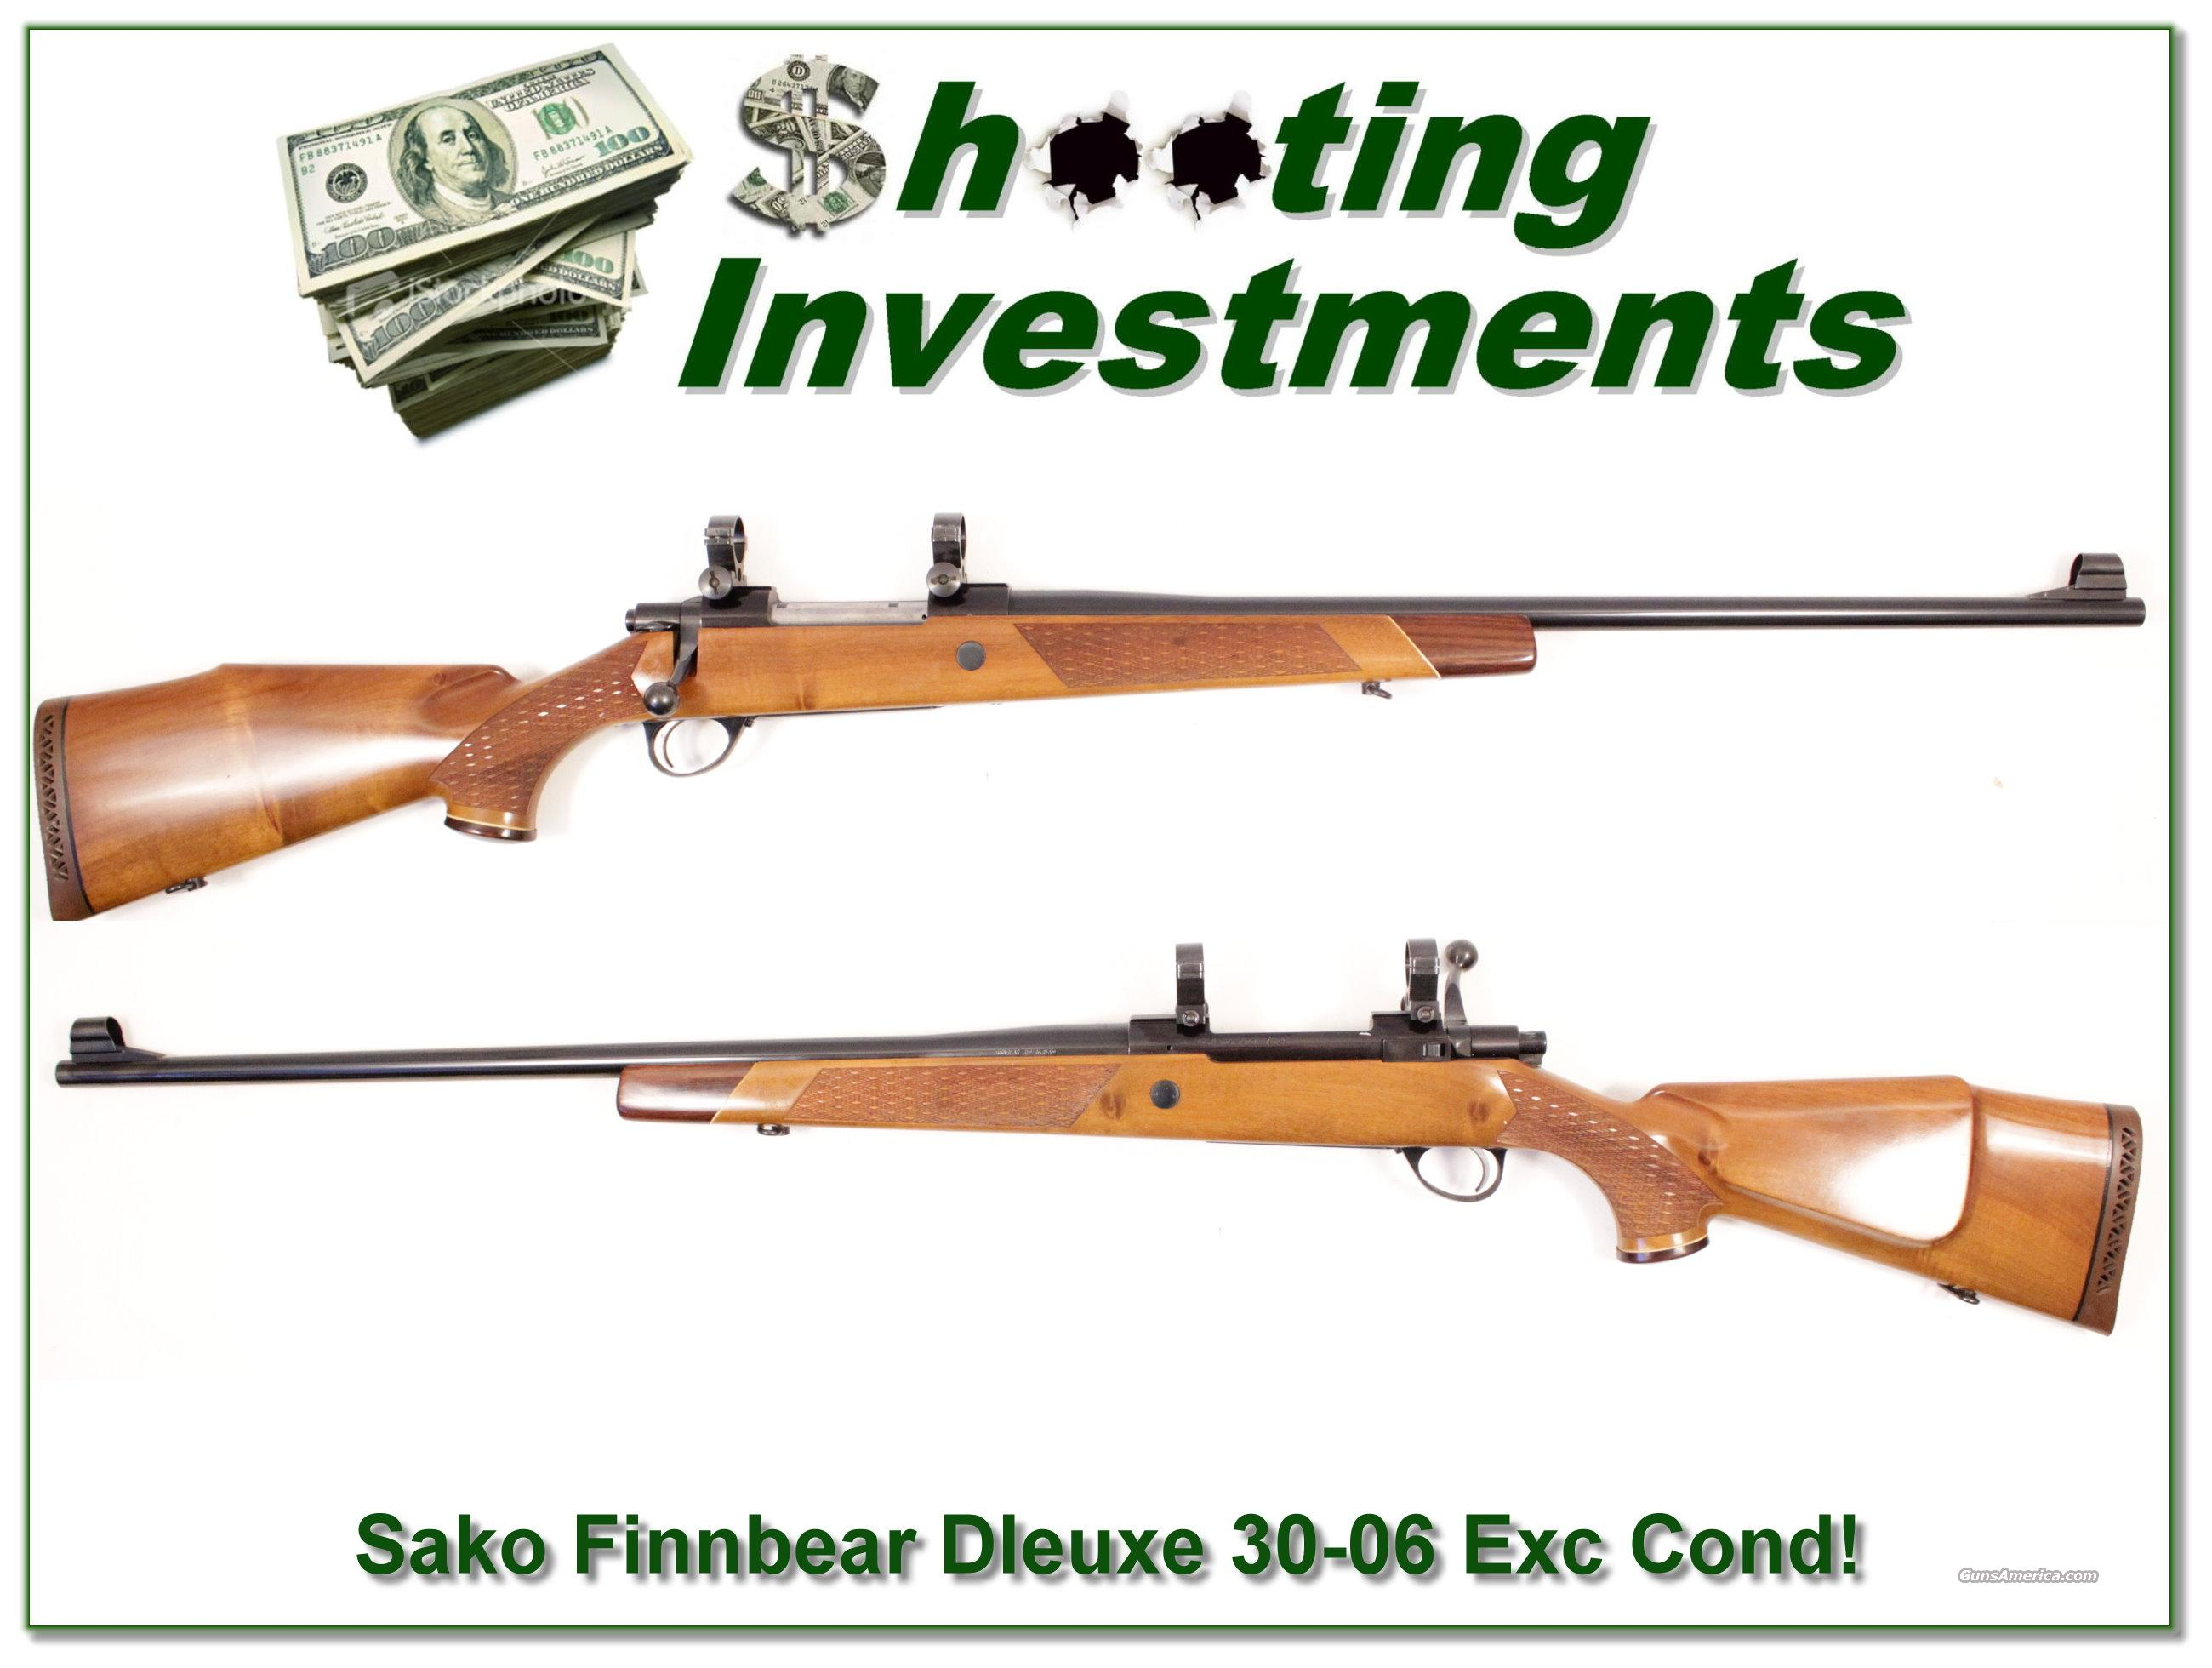 Sako Finnbear Deluxe L61R 30-06 Exc Cond!  Guns > Rifles > Sako Rifles > Other Bolt Action